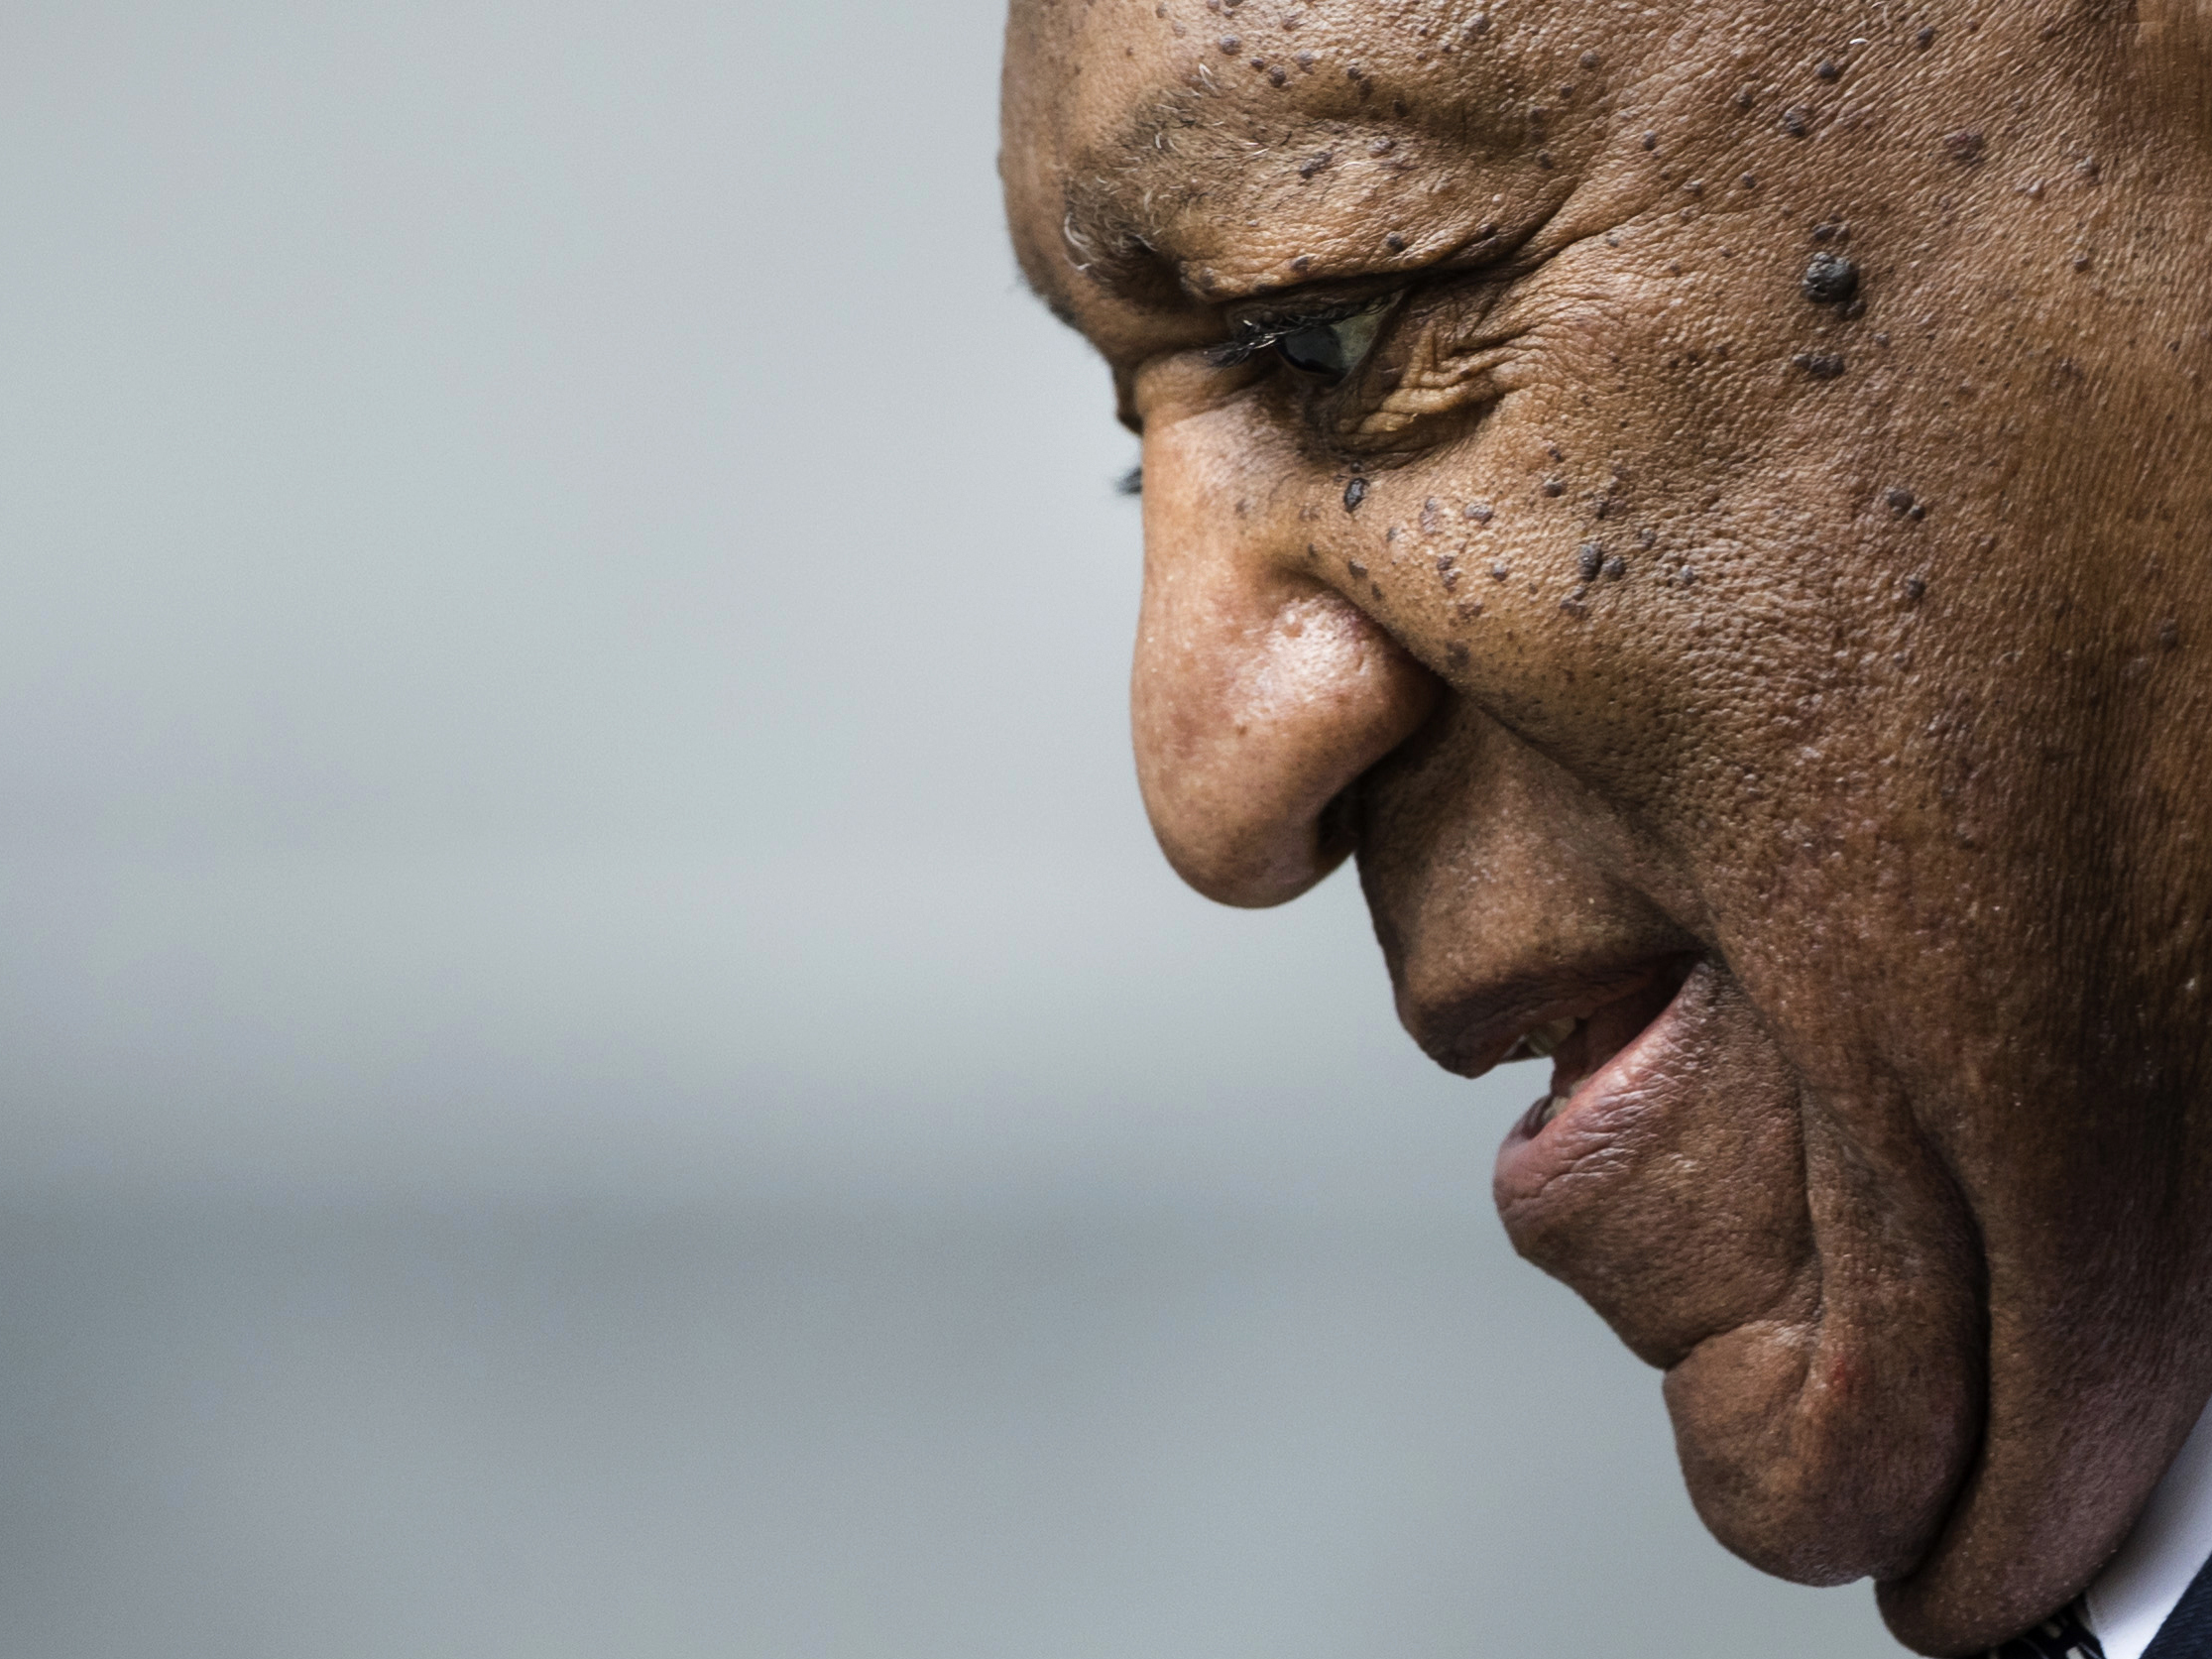 Kennedy Center Revokes 2 Lifetime Awards From Bill Cosby